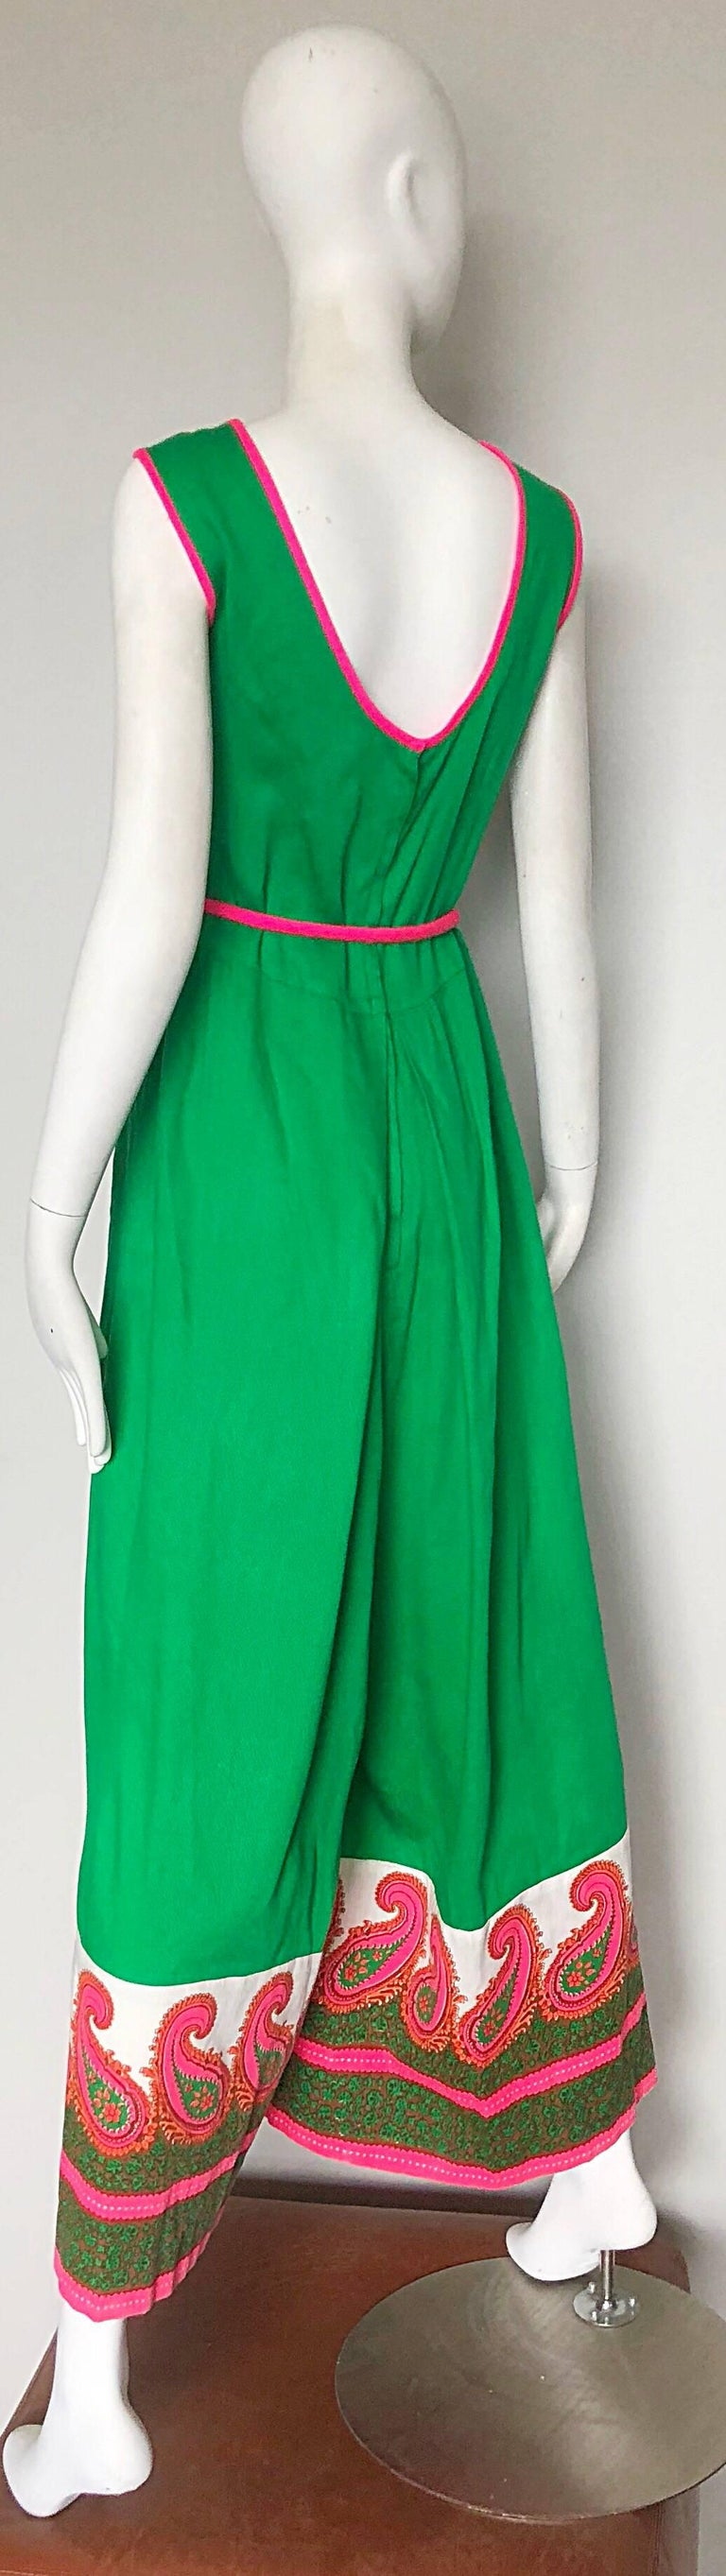 180906a66f5 Alfred Shaheen 1960s Large Size Kelly Green + Pink Vintage 60s Palazzo  Jumpsuit For Sale 4